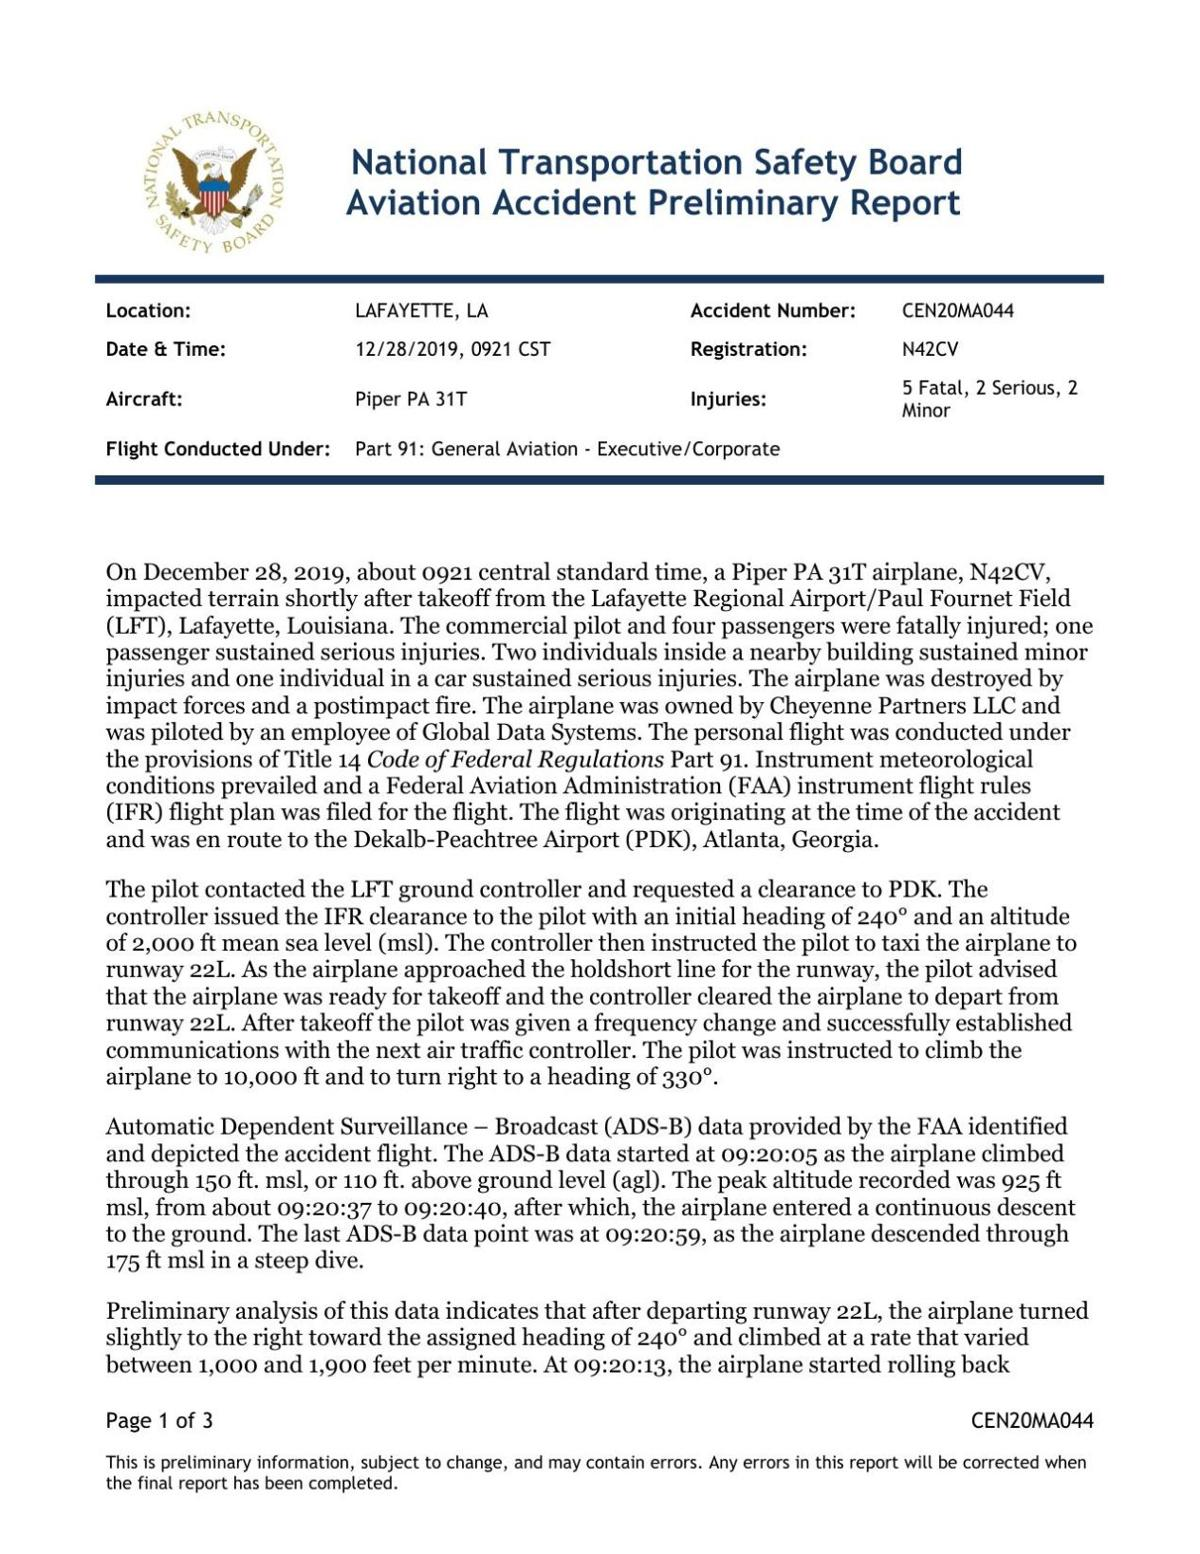 NTSB Preliminary Report on Dec. 28 crash